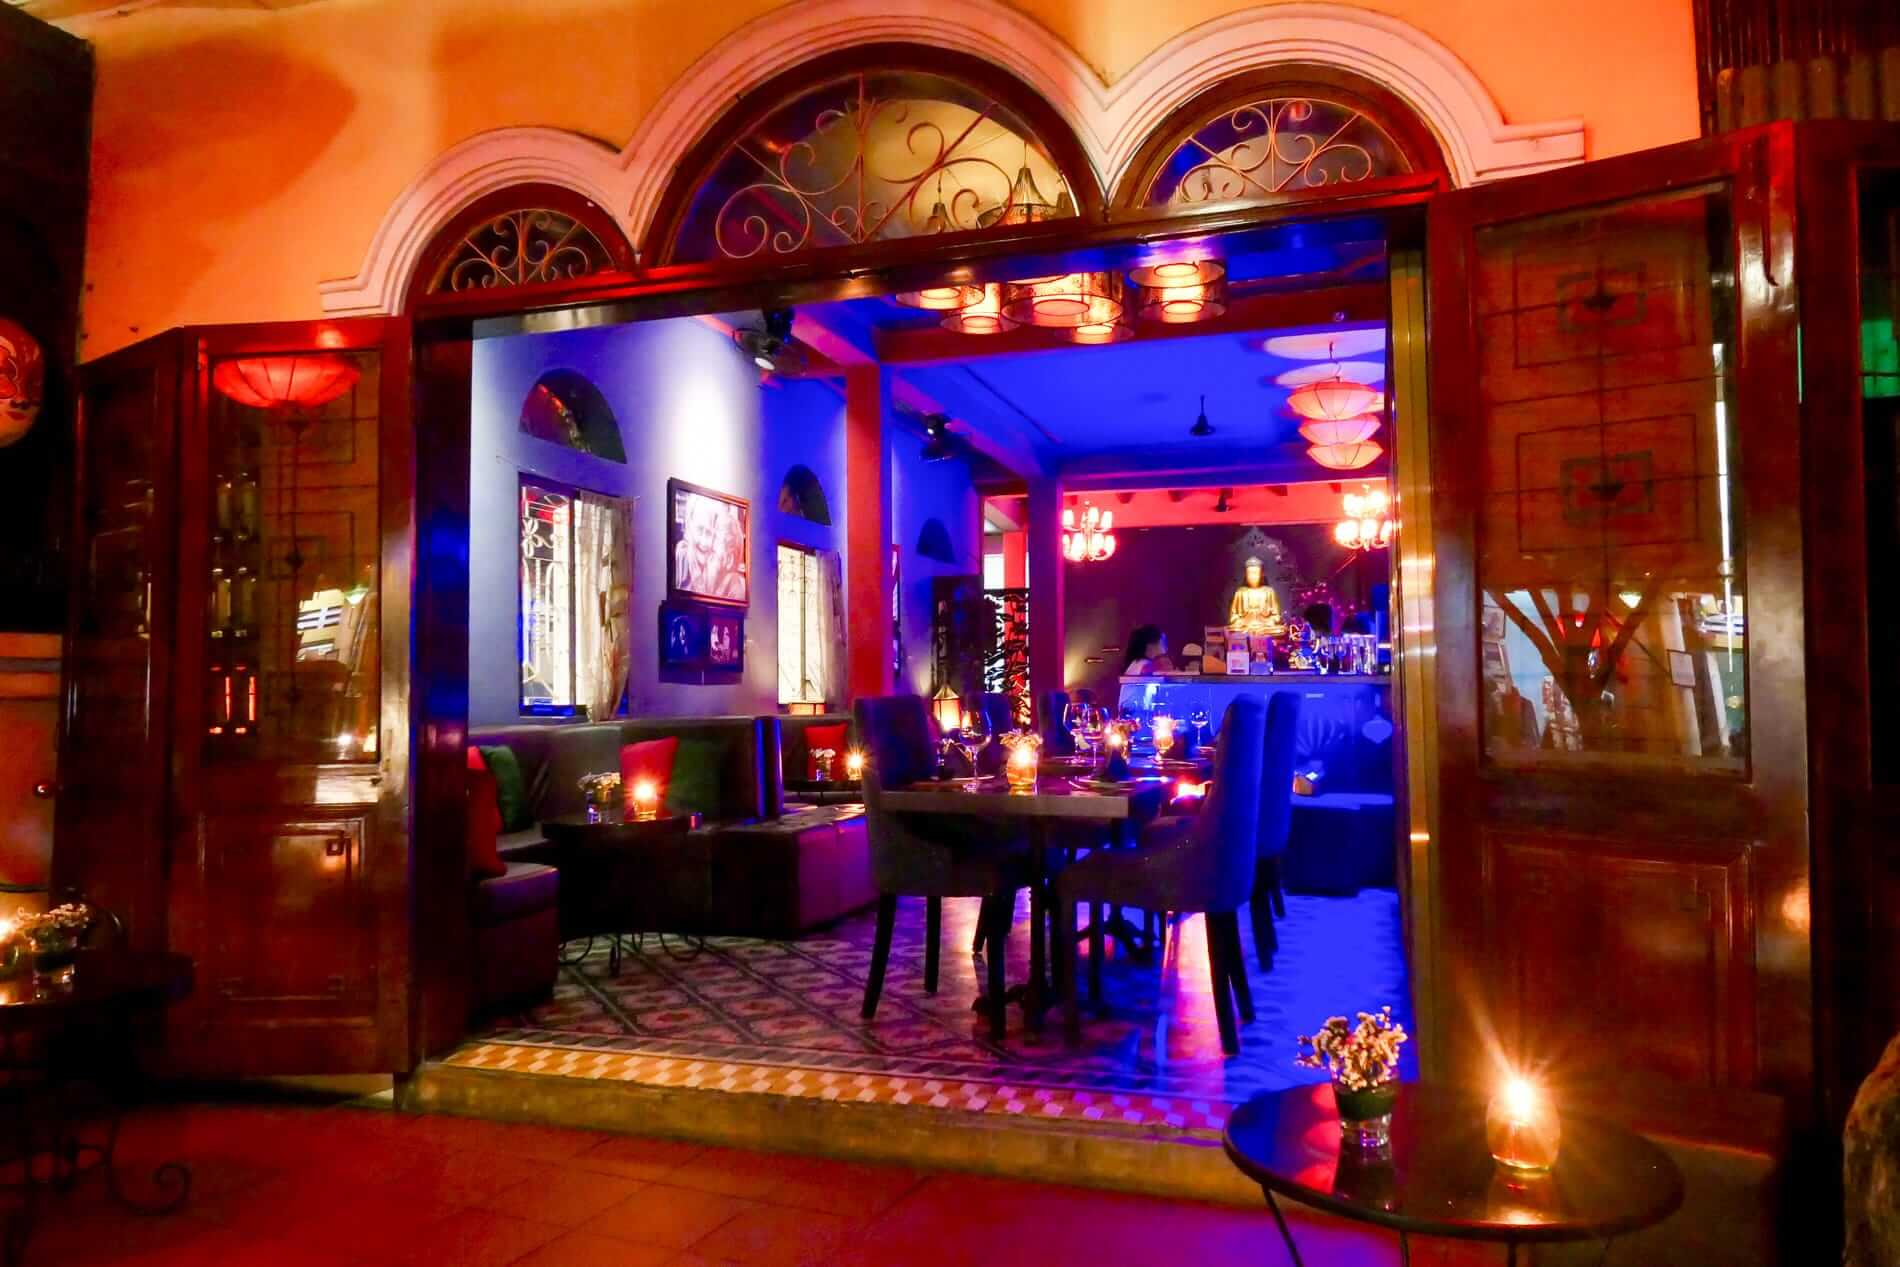 The Hoianian Wine Bar cosy atmosphere